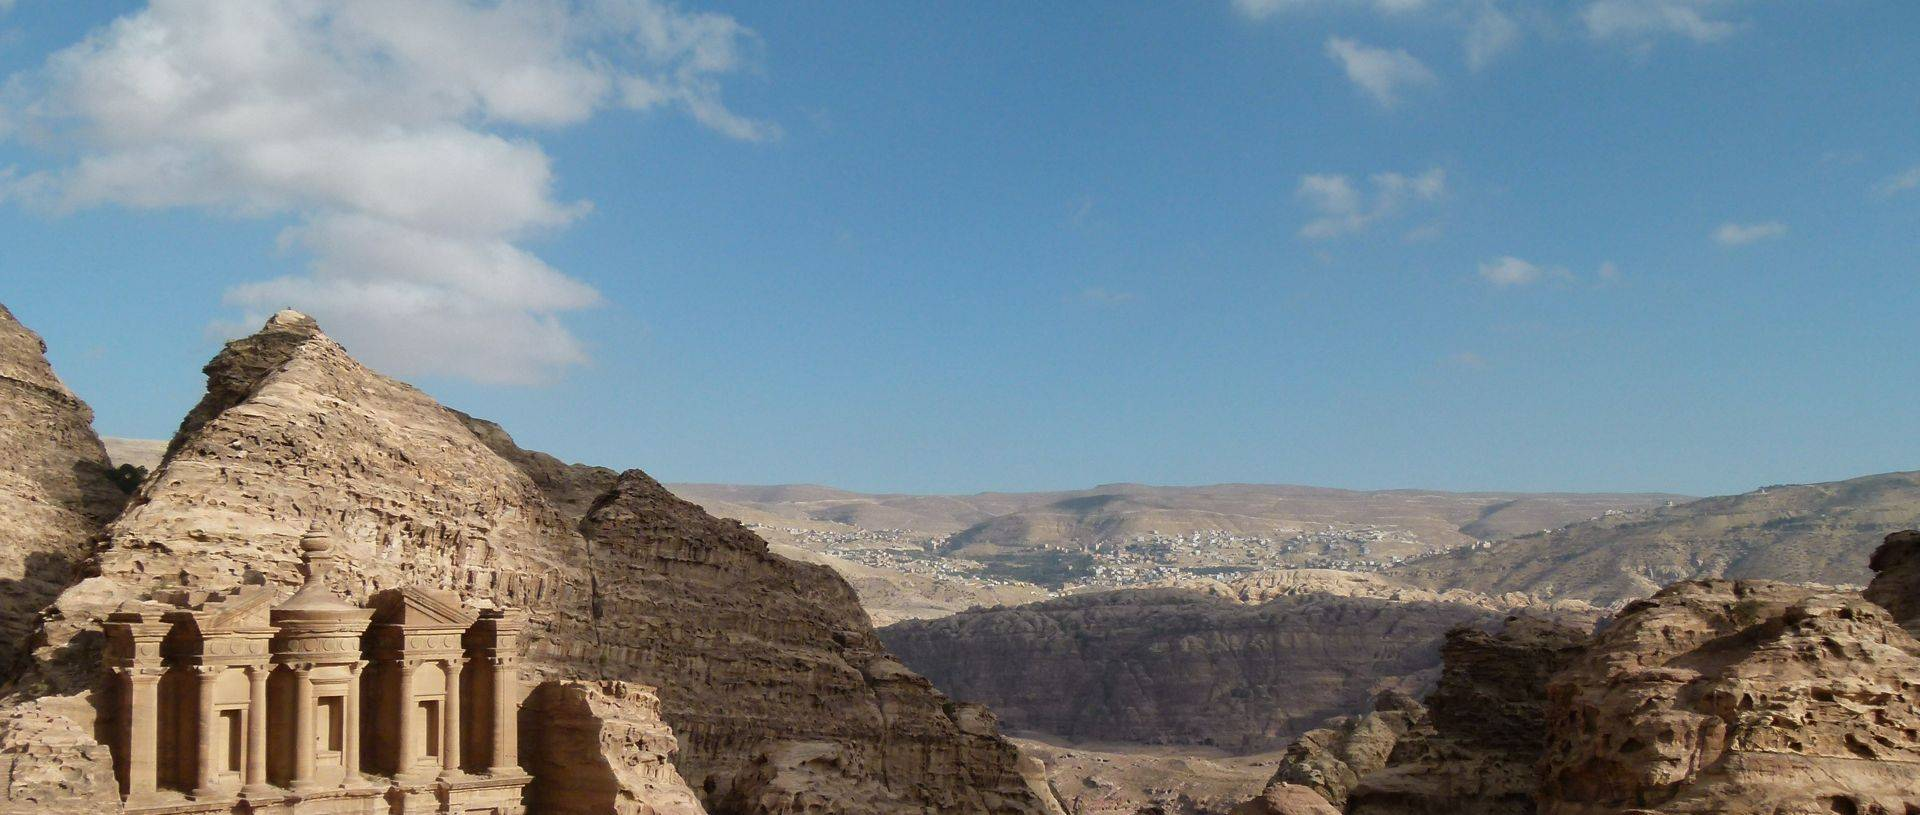 The views of Petra, Jordan.JPG